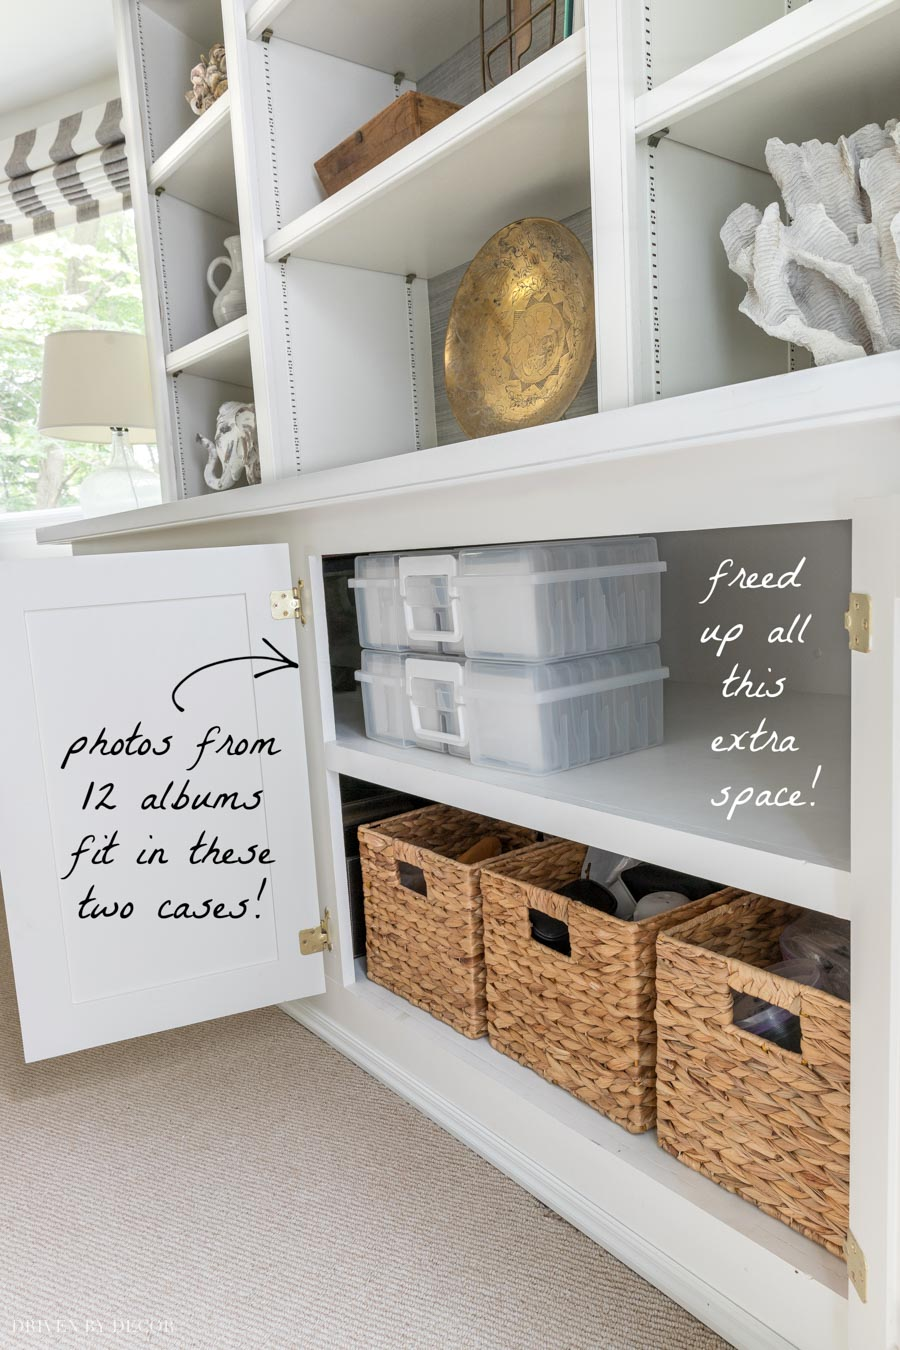 Using these photo storage containers freed up so much space in our cabinets!